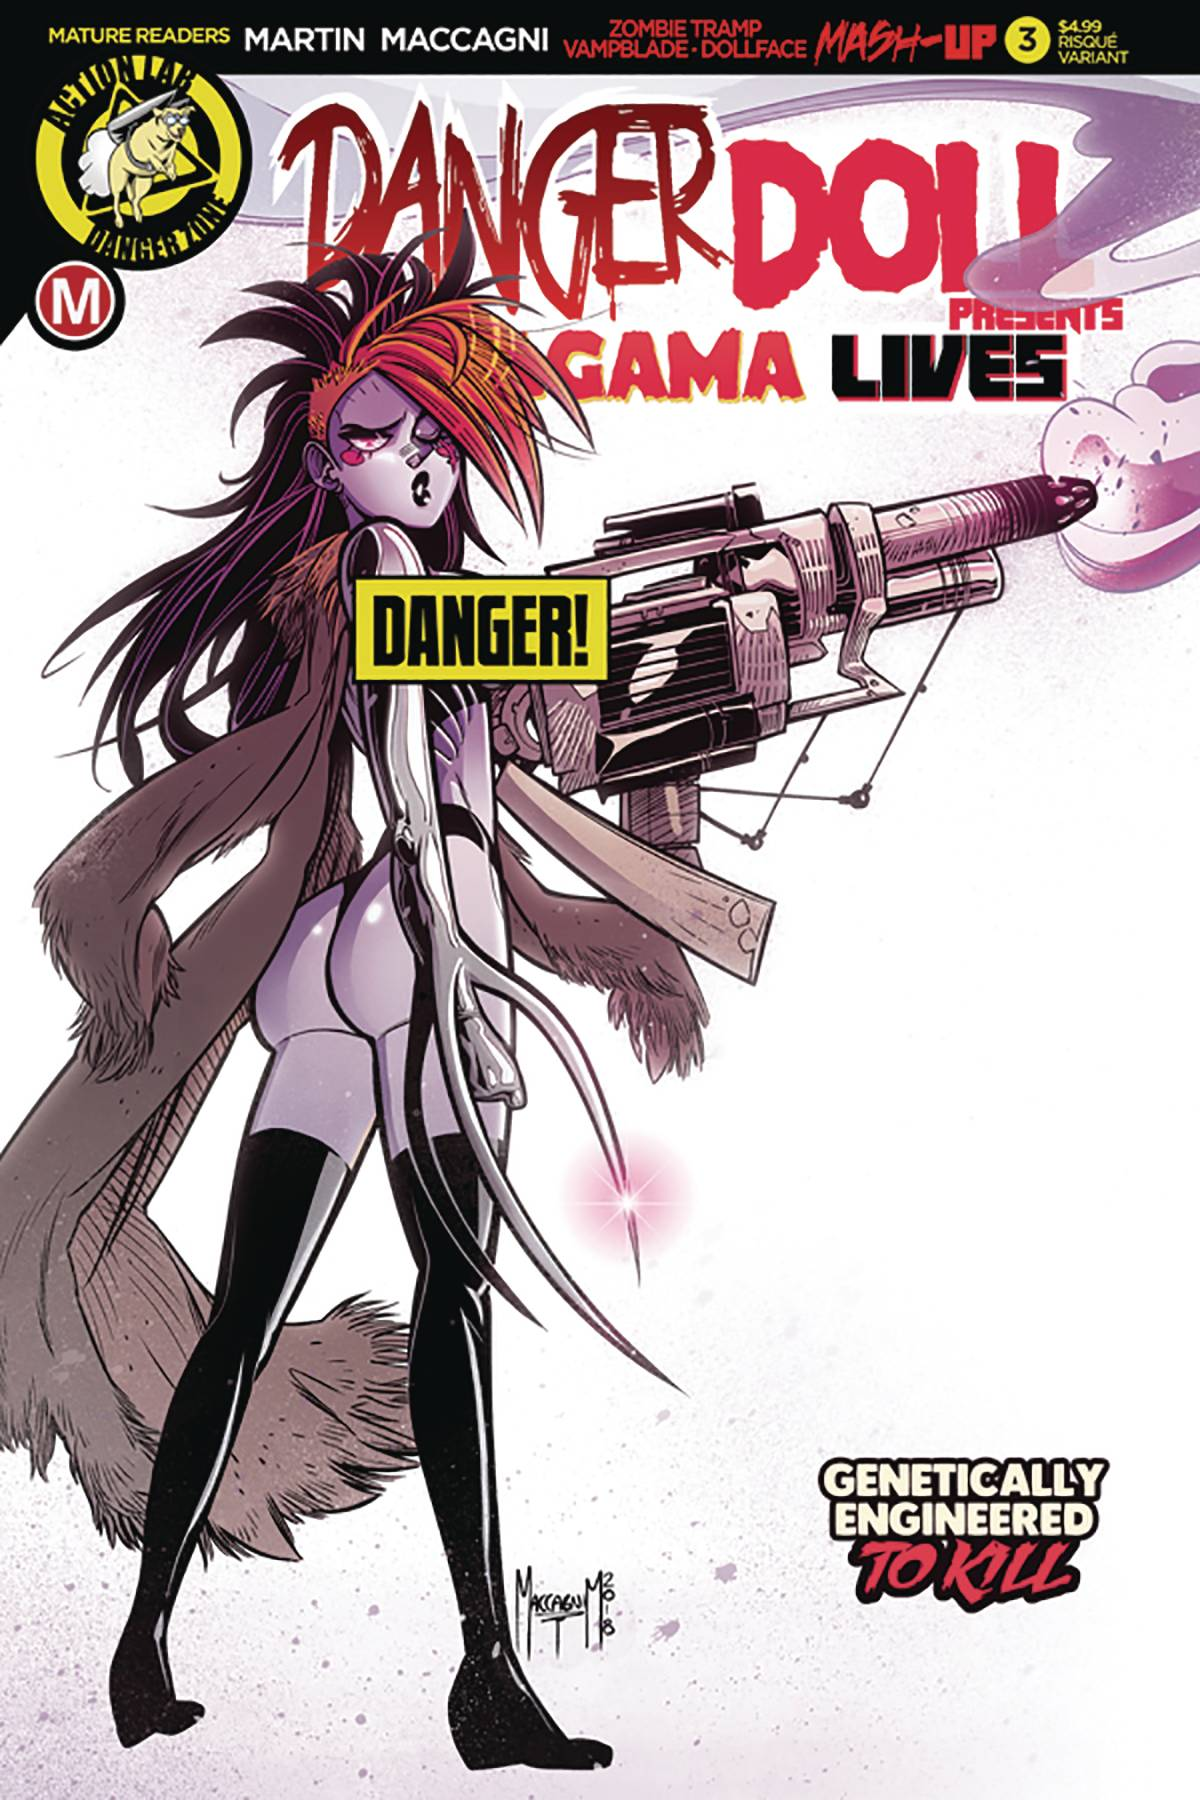 DANGER DOLL SQUAD PRESENTS AMALGAMA LIVES 3 CVR B MACCAGNI RISQUE.jpg